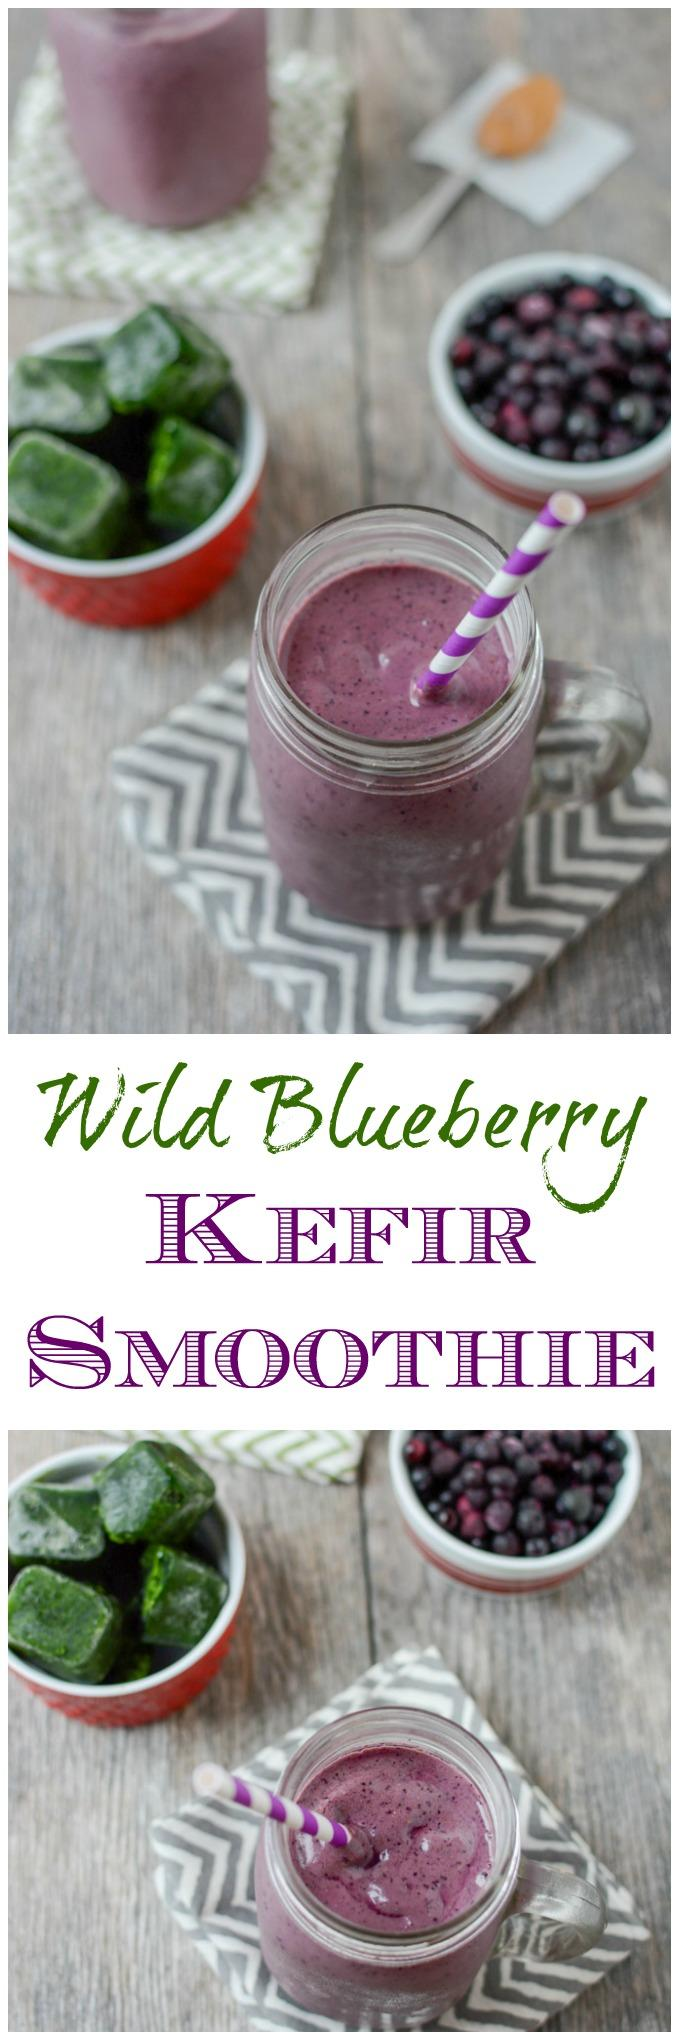 This Wild Blueberry Kefir Smoothie is packed with protein, greens and probiotics and makes a great breakfast or afternoon snack.